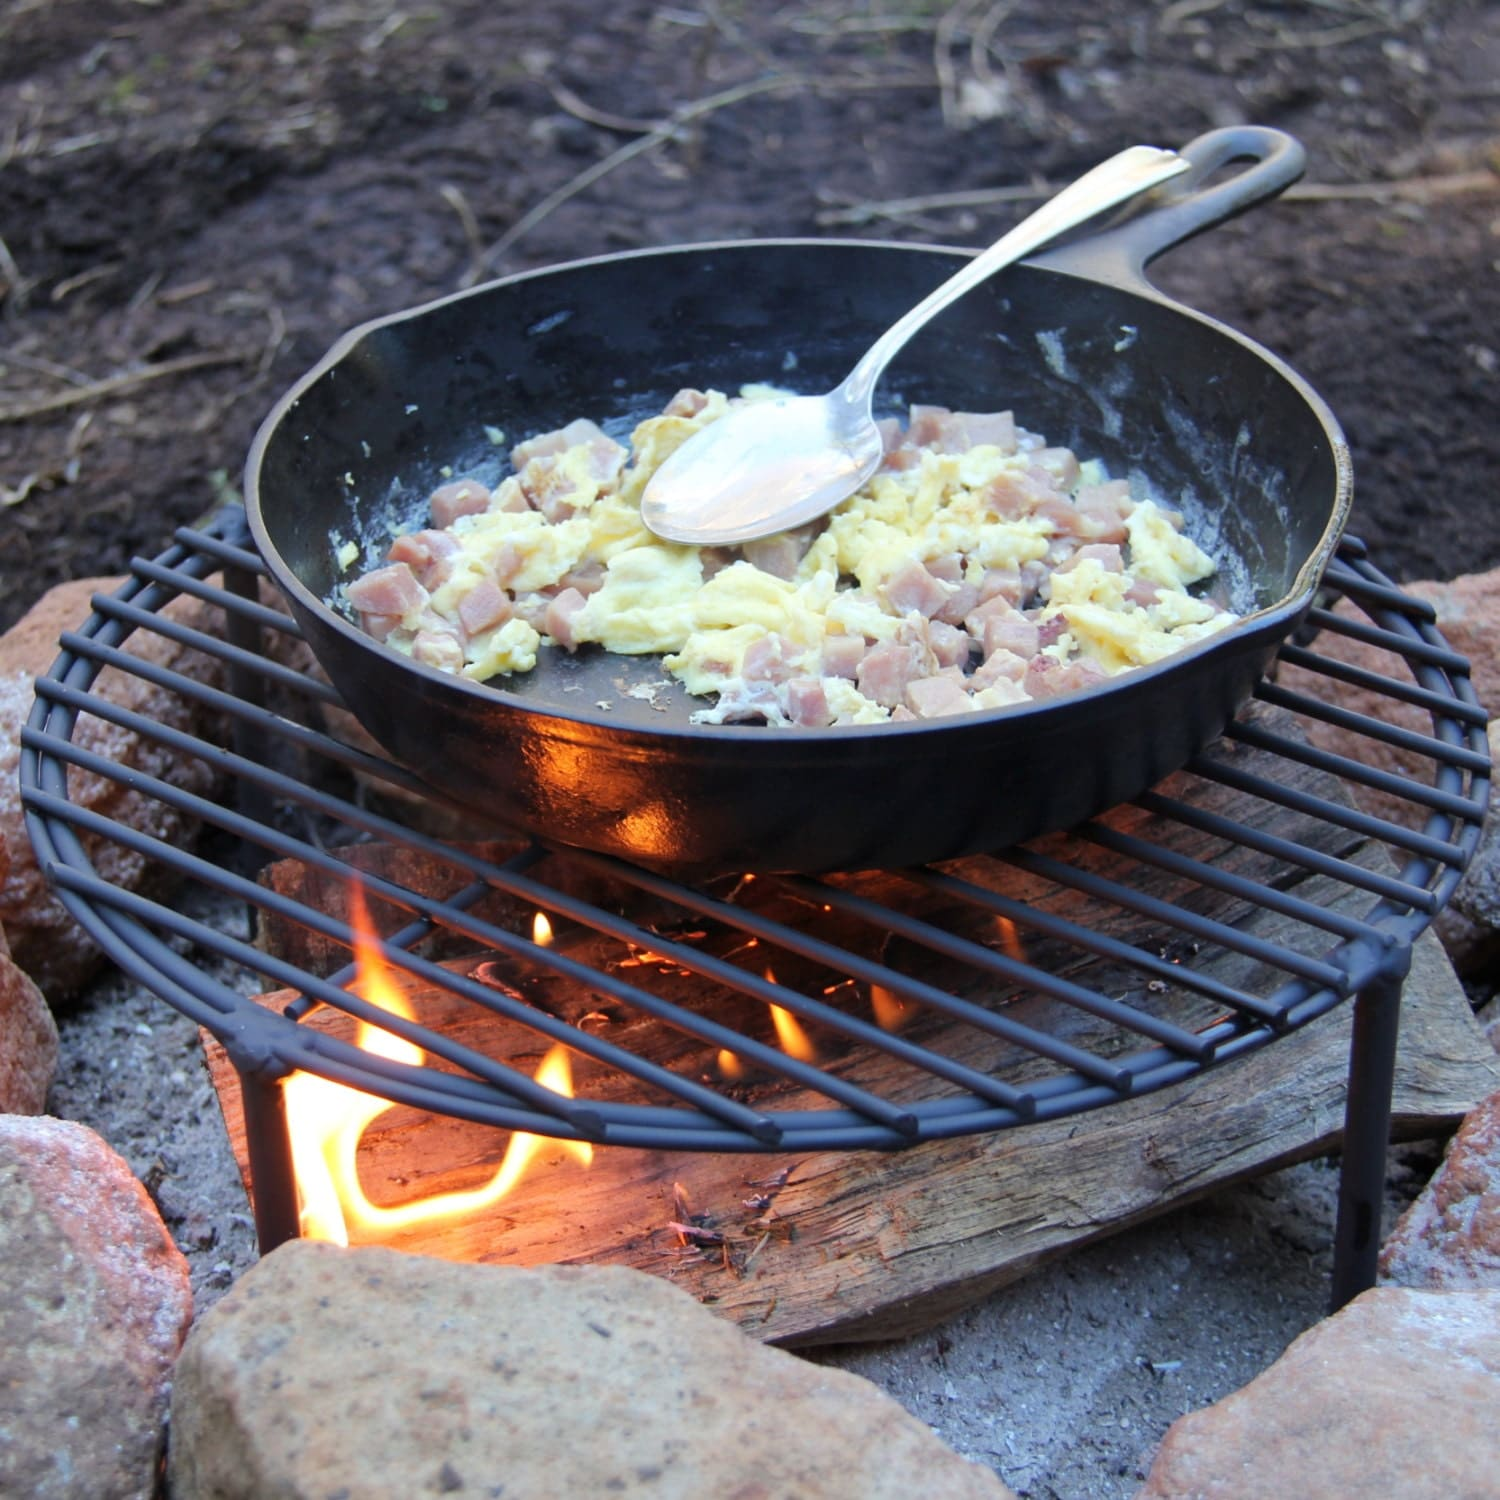 Sturdy Camping Fry Pan / Skillet Stand/ By BlacksmithCreations